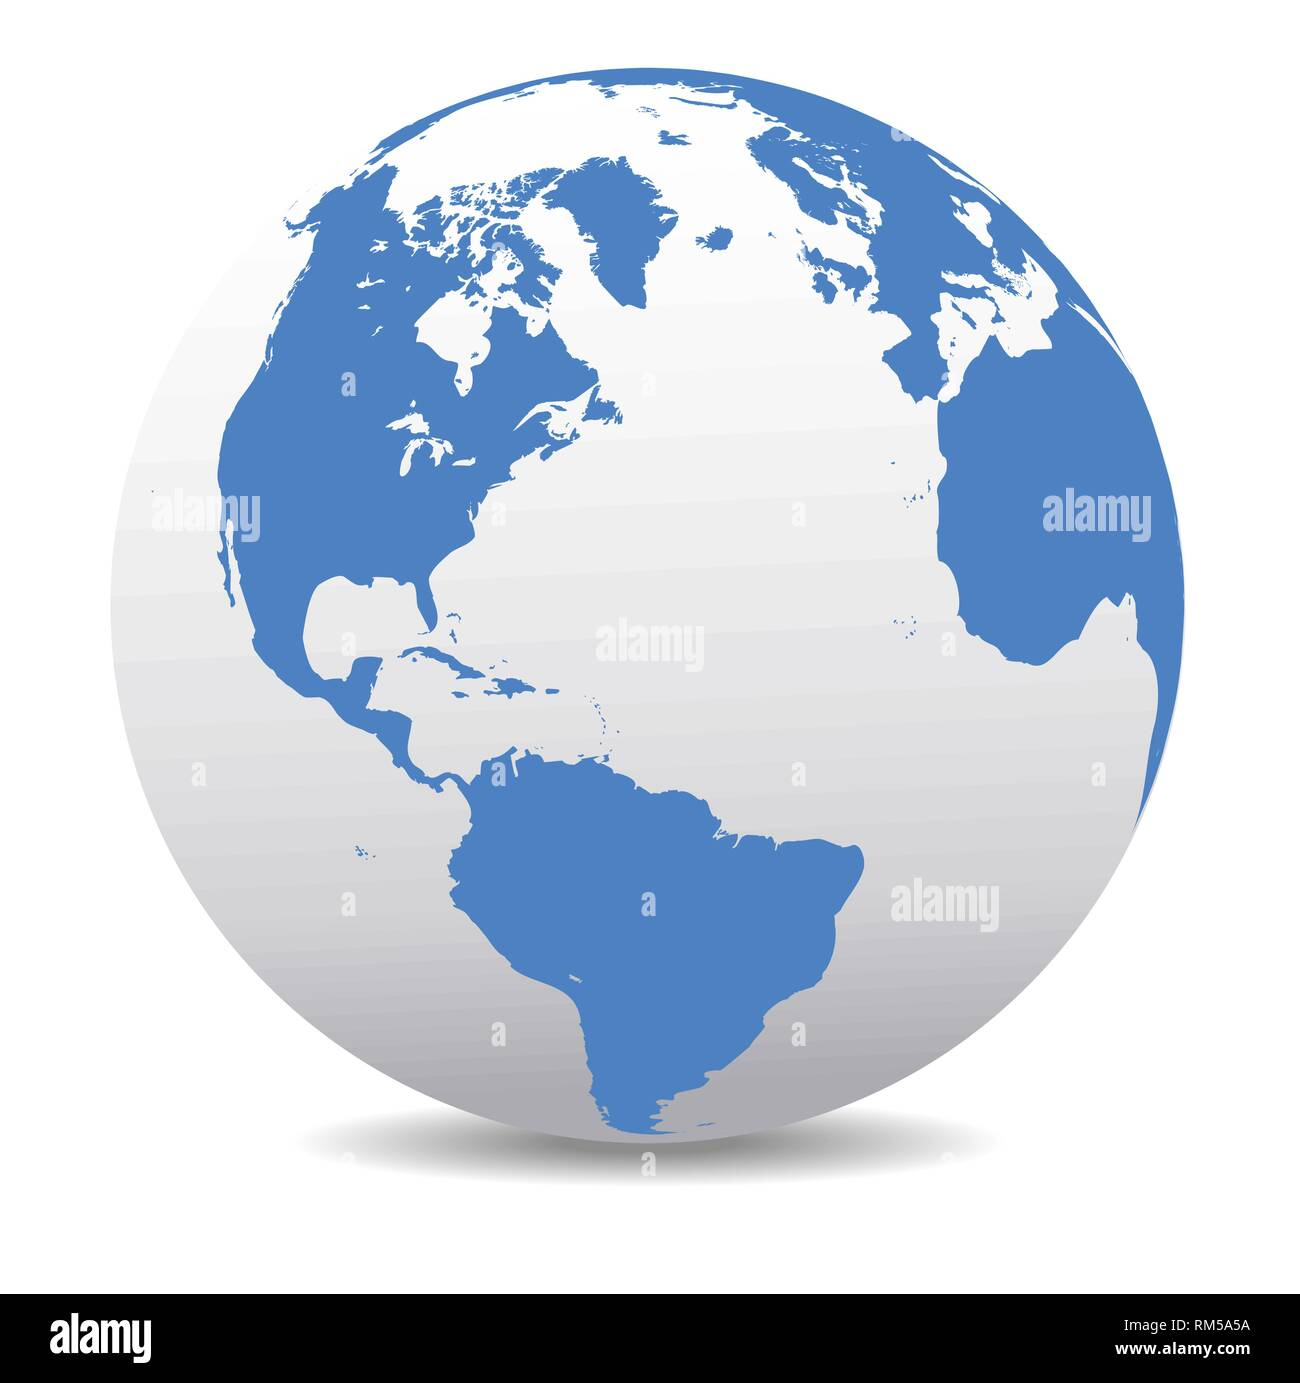 North and South America, Europe, Africa Global World, Vector ... on map of antarctica globe, map of pacific ocean globe, map of world globe,